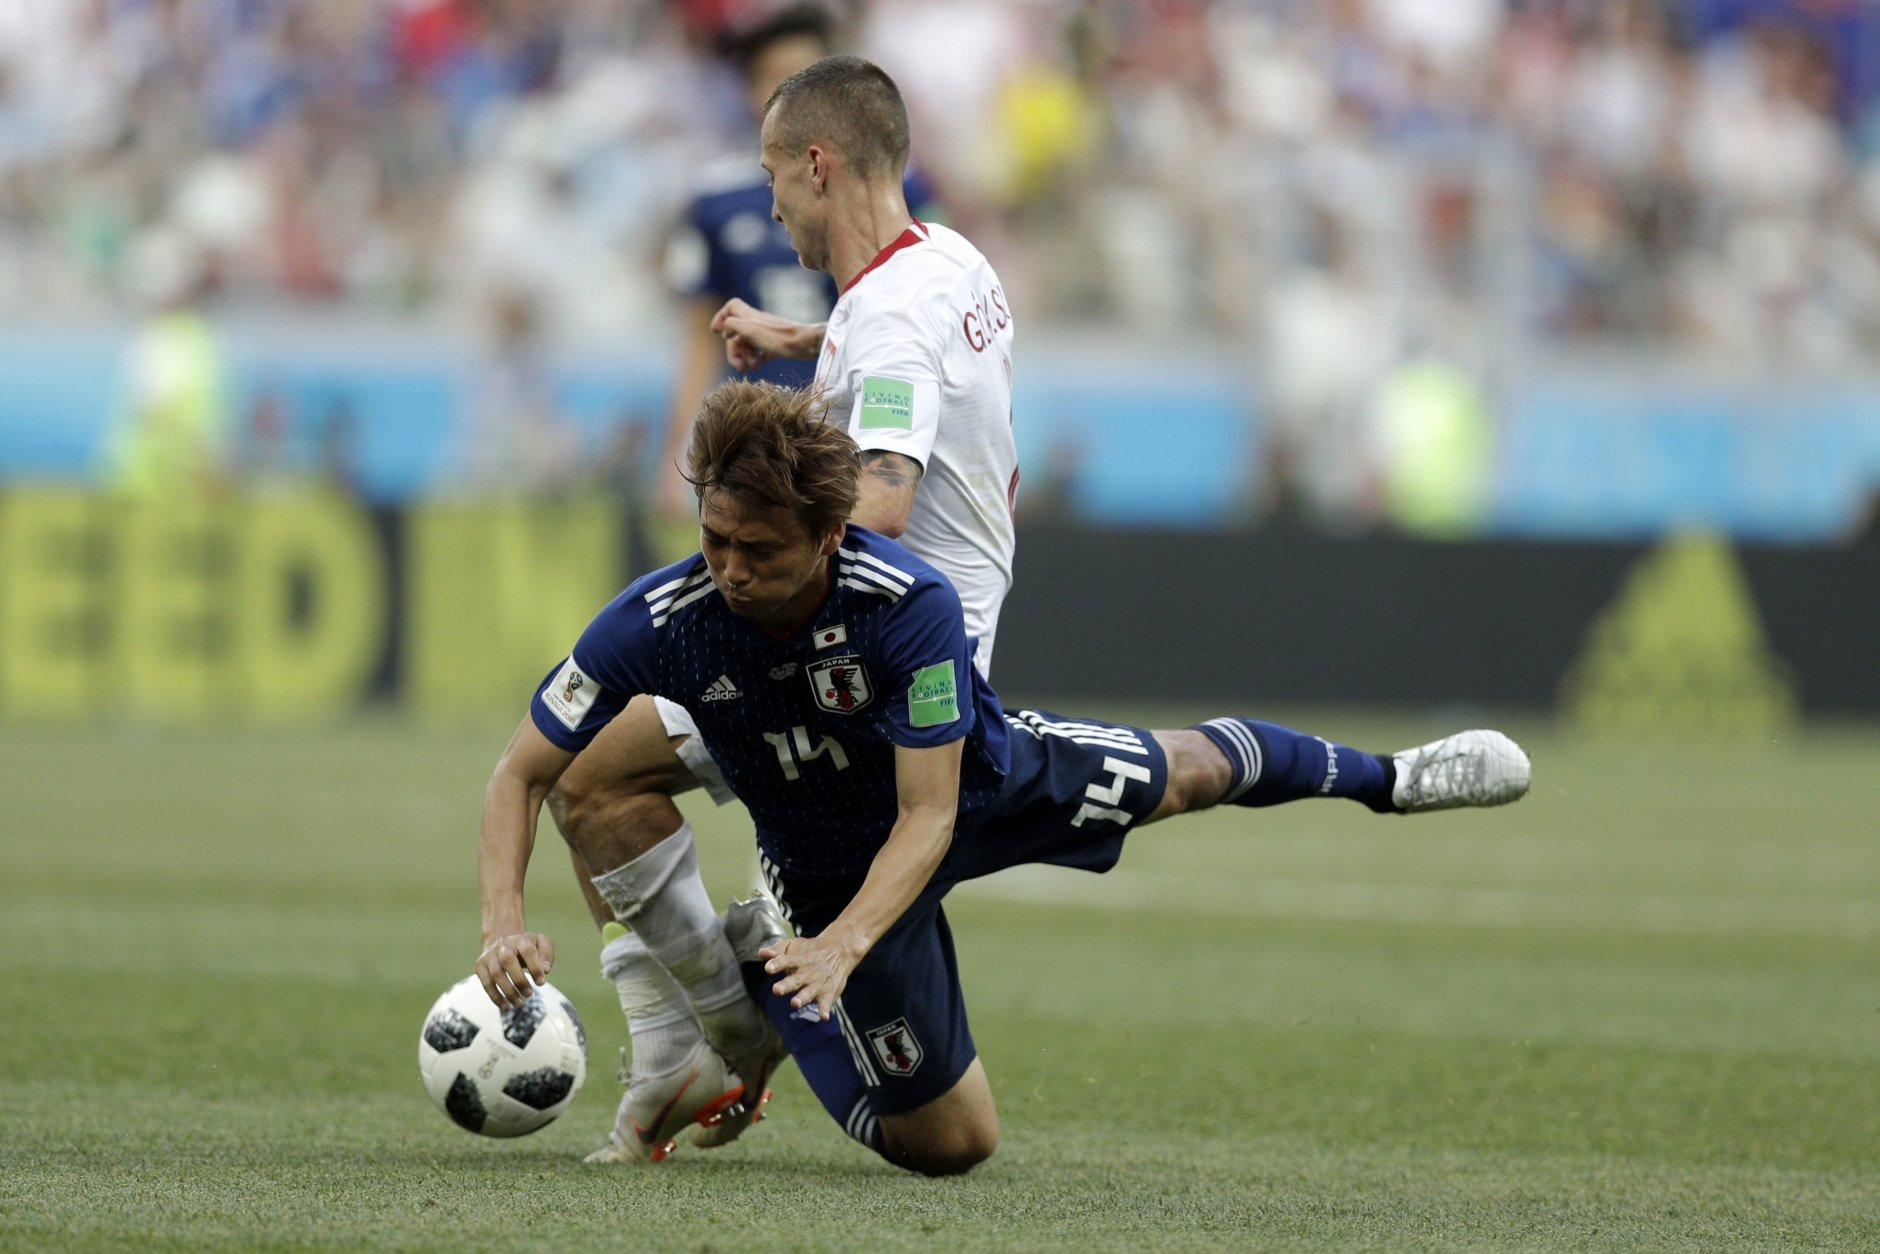 Poland's Jacek Goralski, background, stops Japan's Takashi Inui during the group H match between Japan and Poland at the 2018 soccer World Cup at the Volgograd Arena in Volgograd, Russia, Thursday, June 28, 2018. (AP Photo/Andrew Medichini)